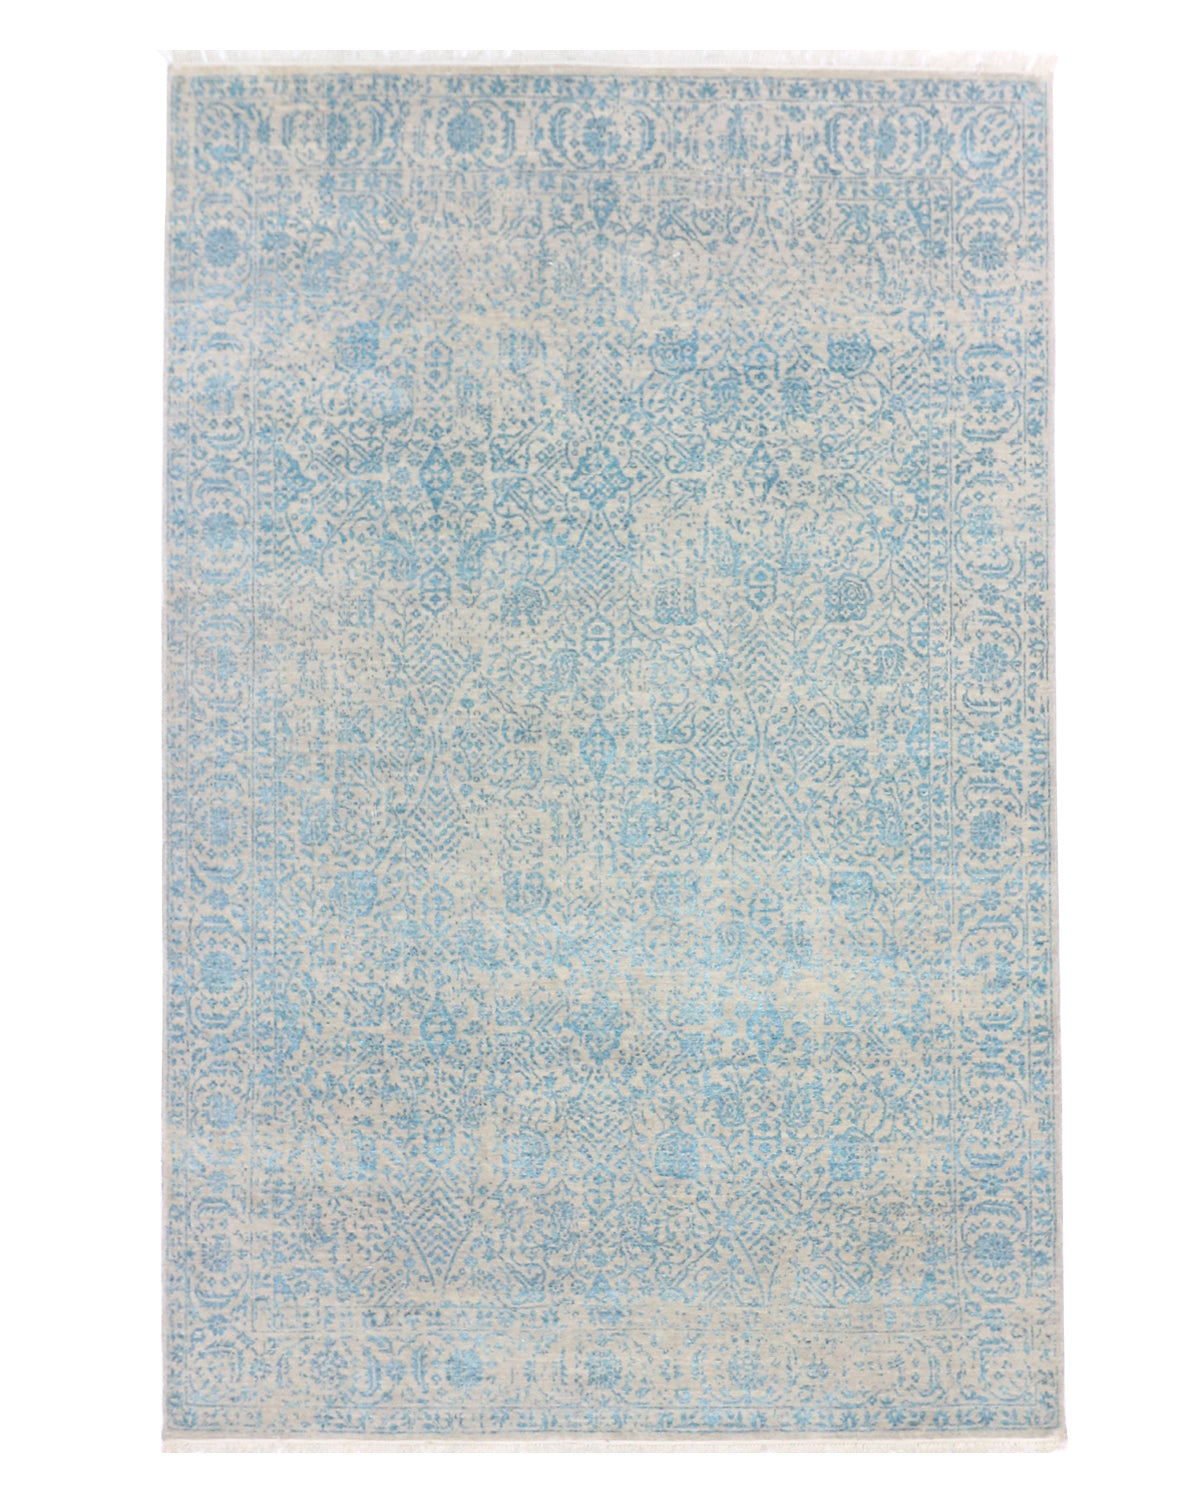 Handmade rugs, carpet culture rug, nyc rugs, cheap rugs, area rug, new rugs, modern rugs, grass rugs, transitional rugs, handmade carpets, carpets nyc, rugs, rug, handknotted